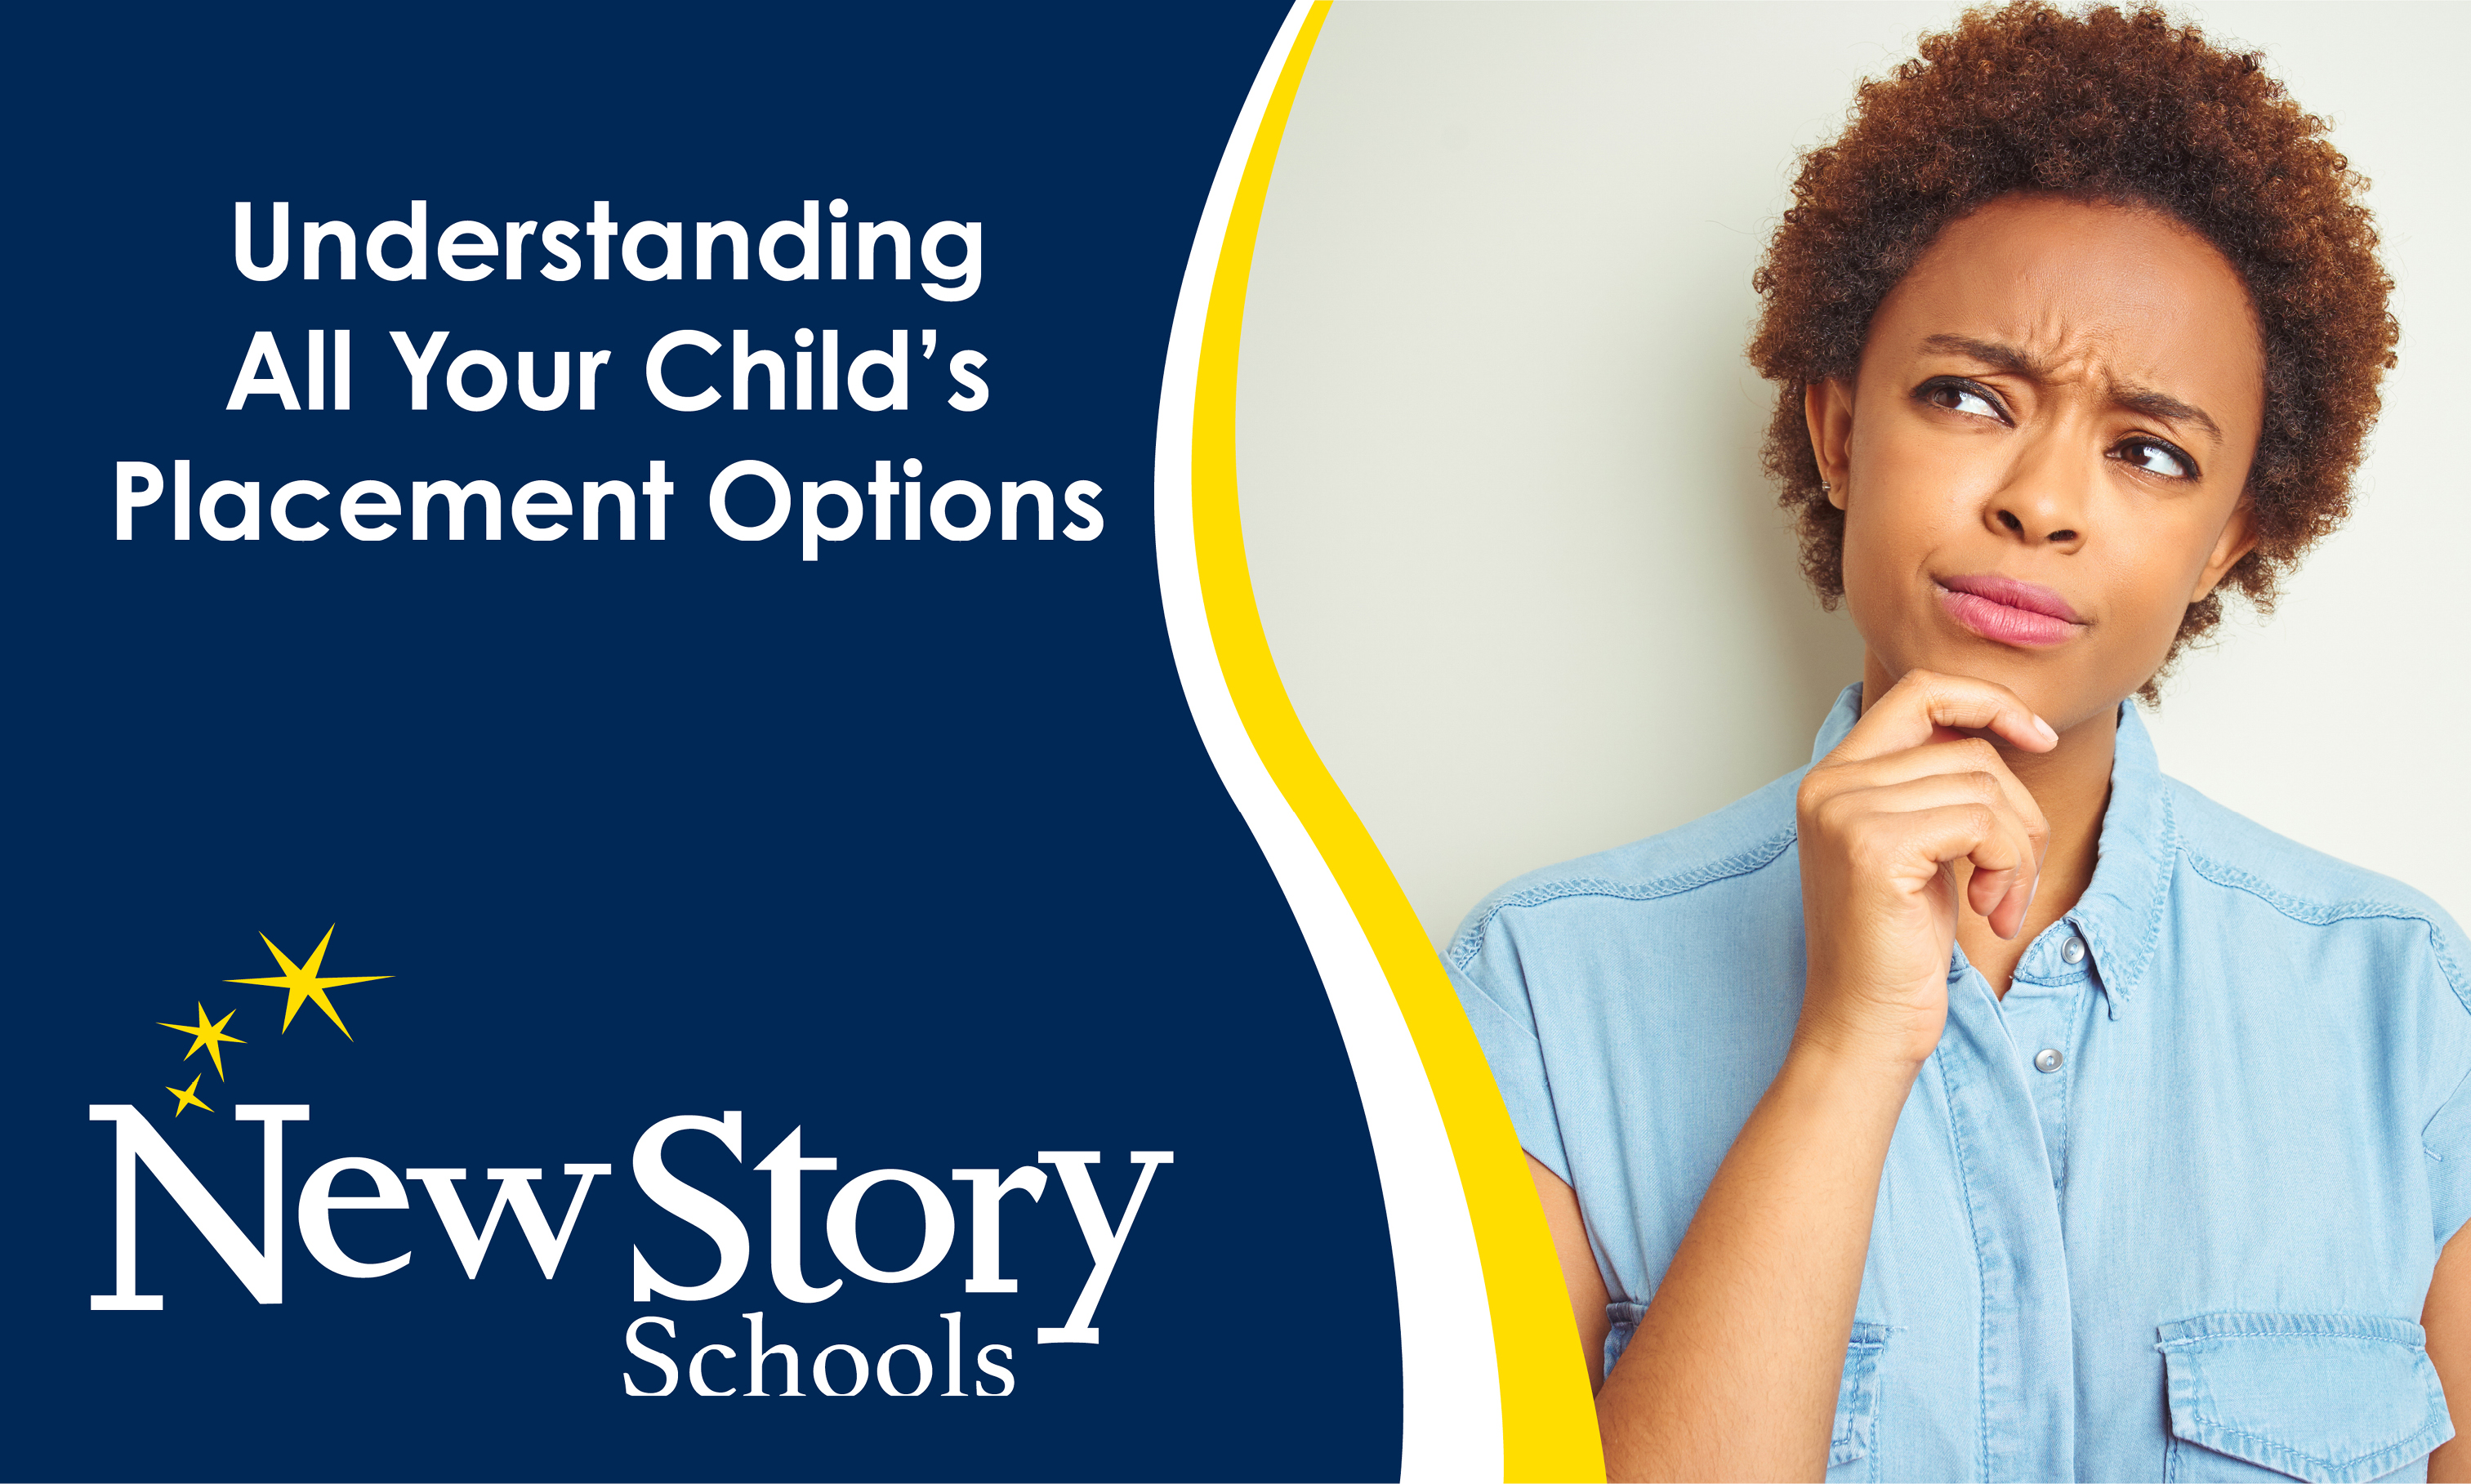 Woman looks concerned about choosing special education for her child. Title: Understanding All Your Child's Placement Options